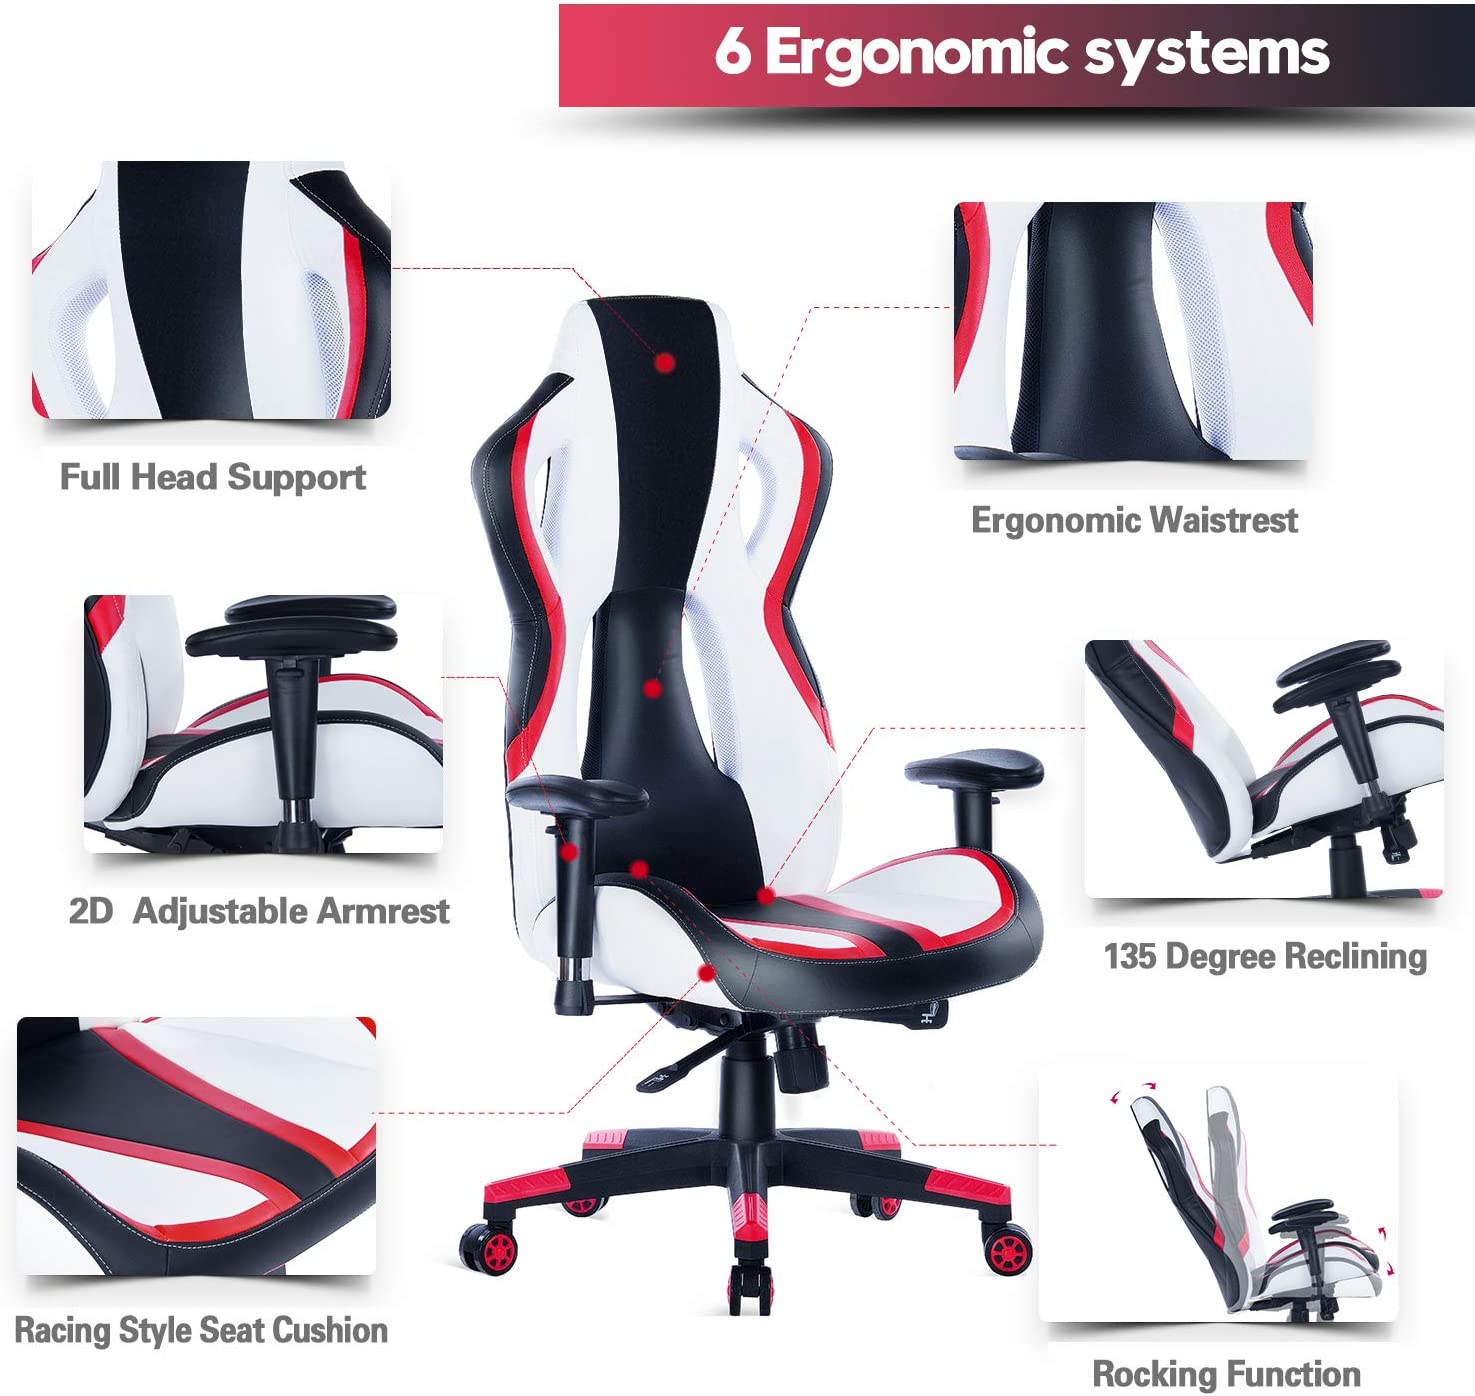 HEALGEN Gaming Chair Racing Style High-Back PU Leather Office Chair PC Desk Chair Executive and Ergonomic Swivel Chair 907 Red